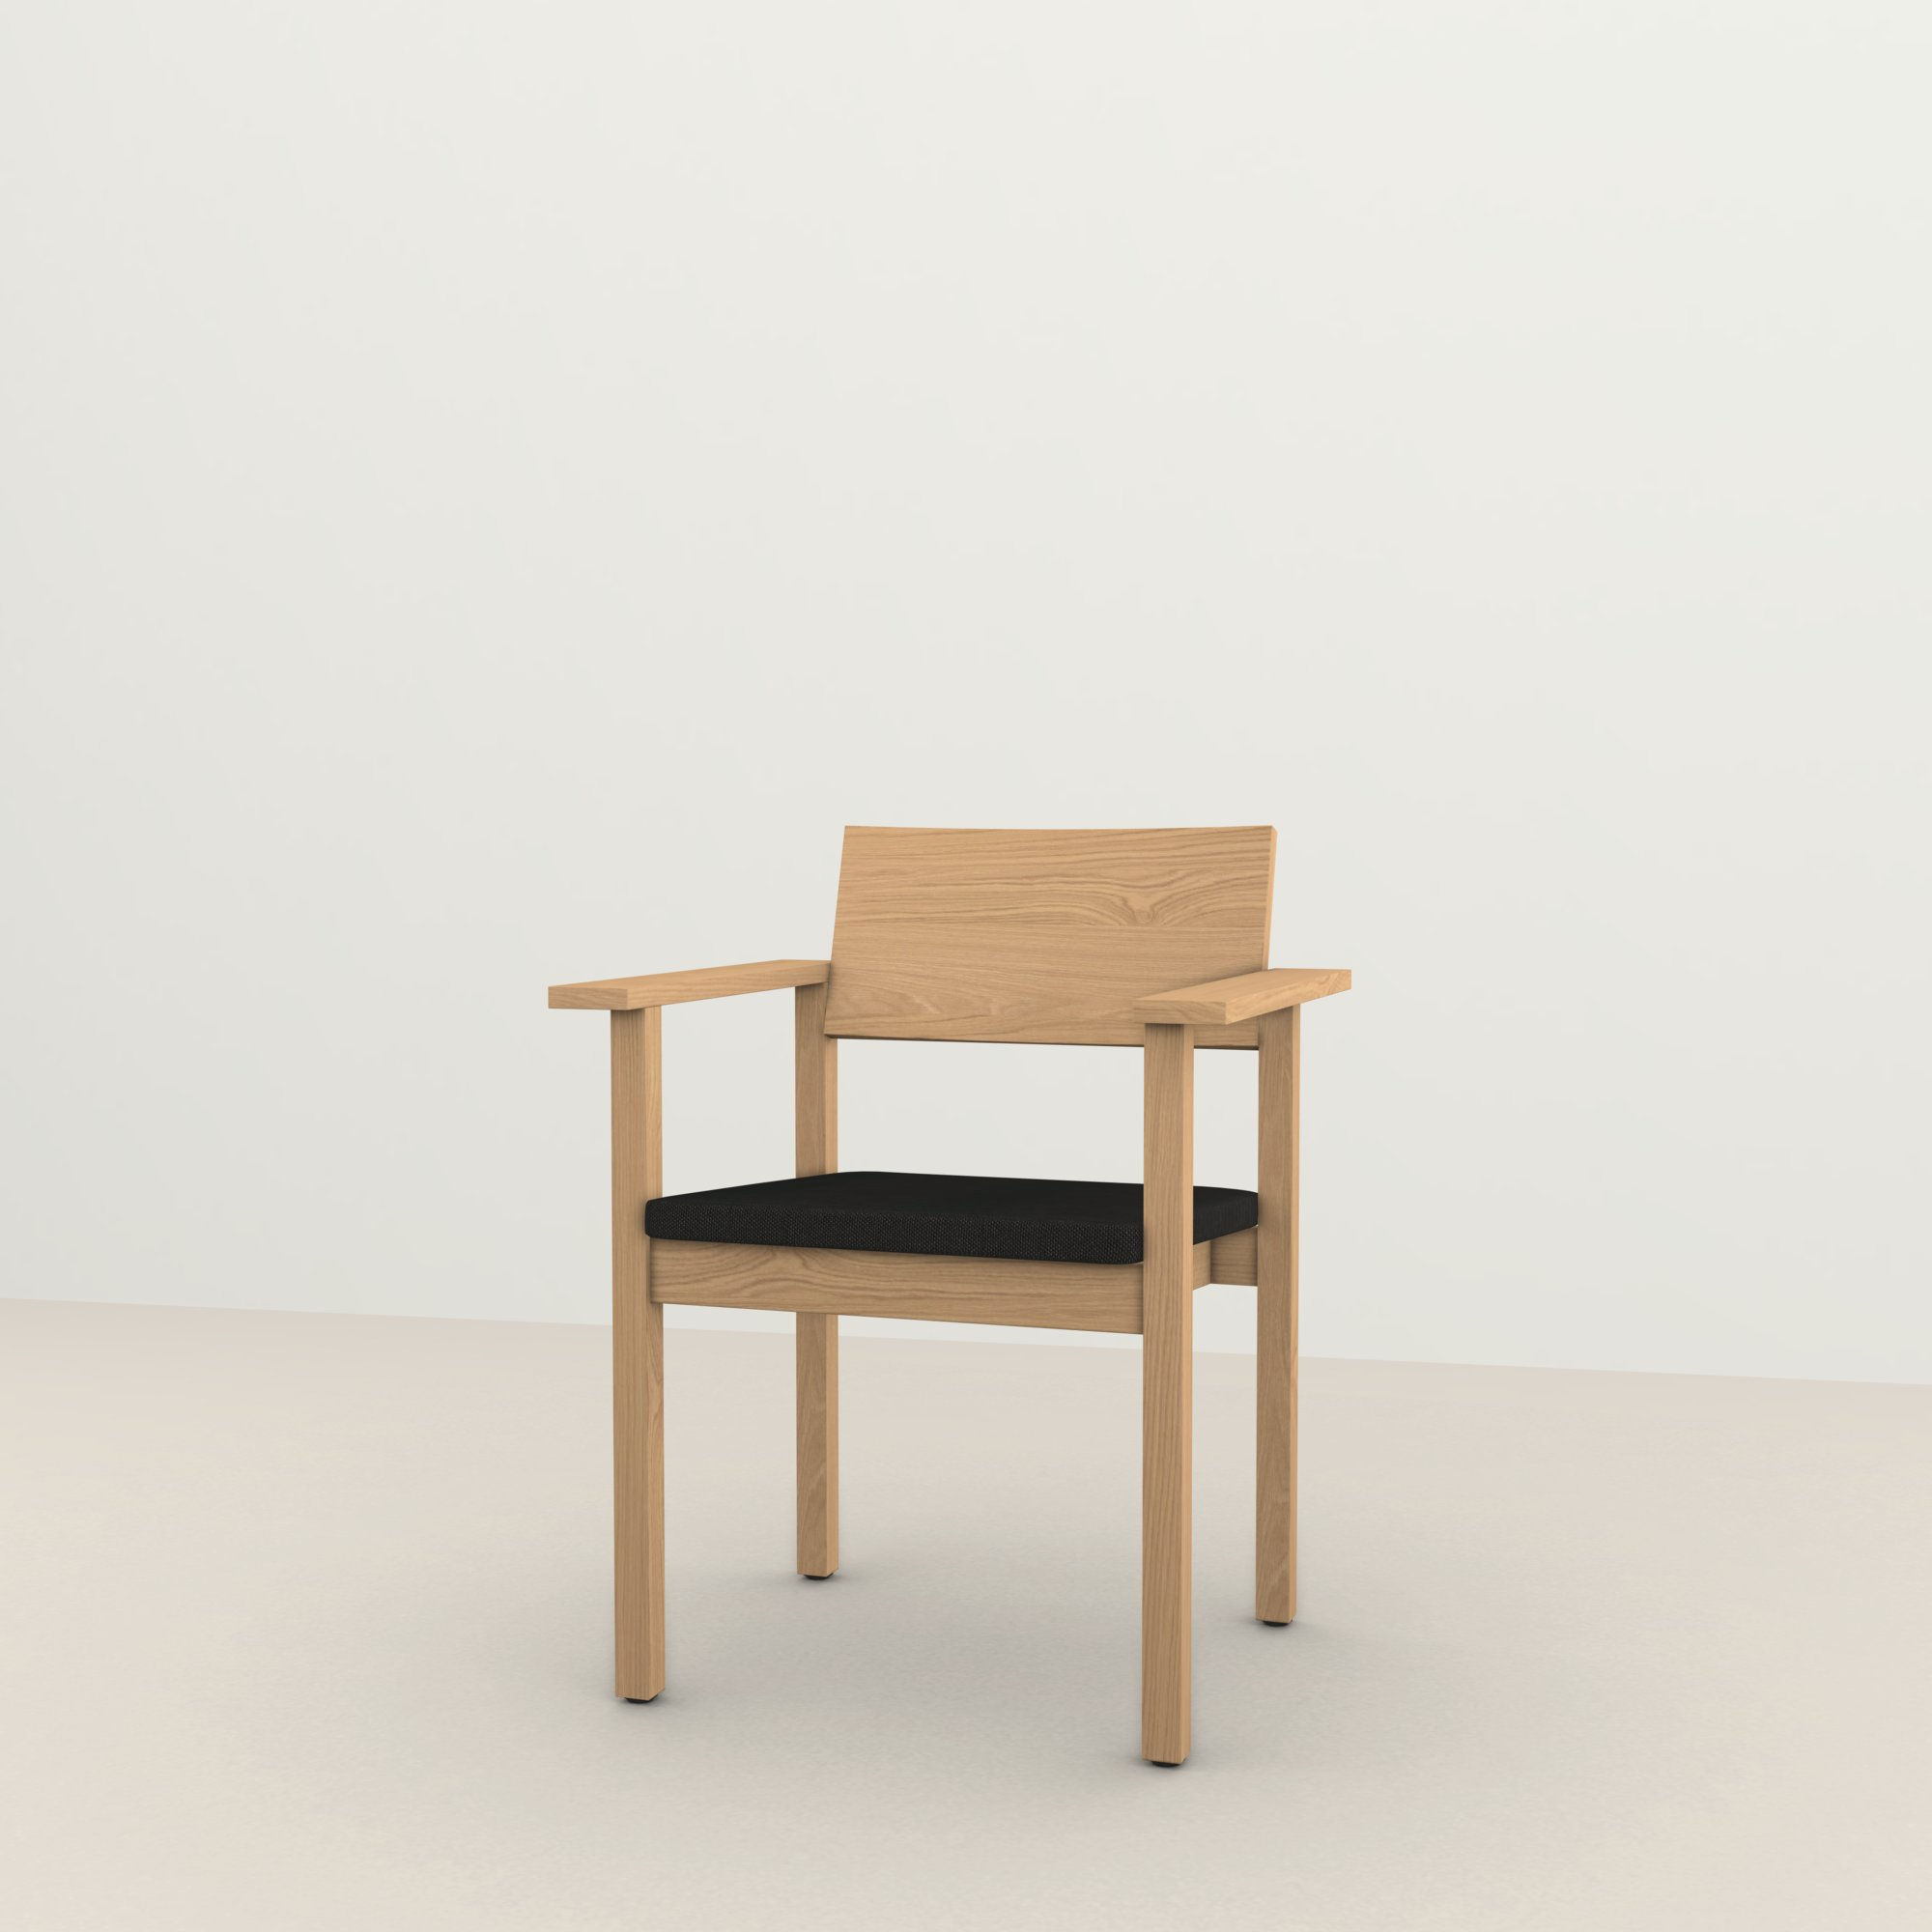 Design eetkamerstoel | Base Chair with armrest upholstered calvados onyx169 | Studio HENK |